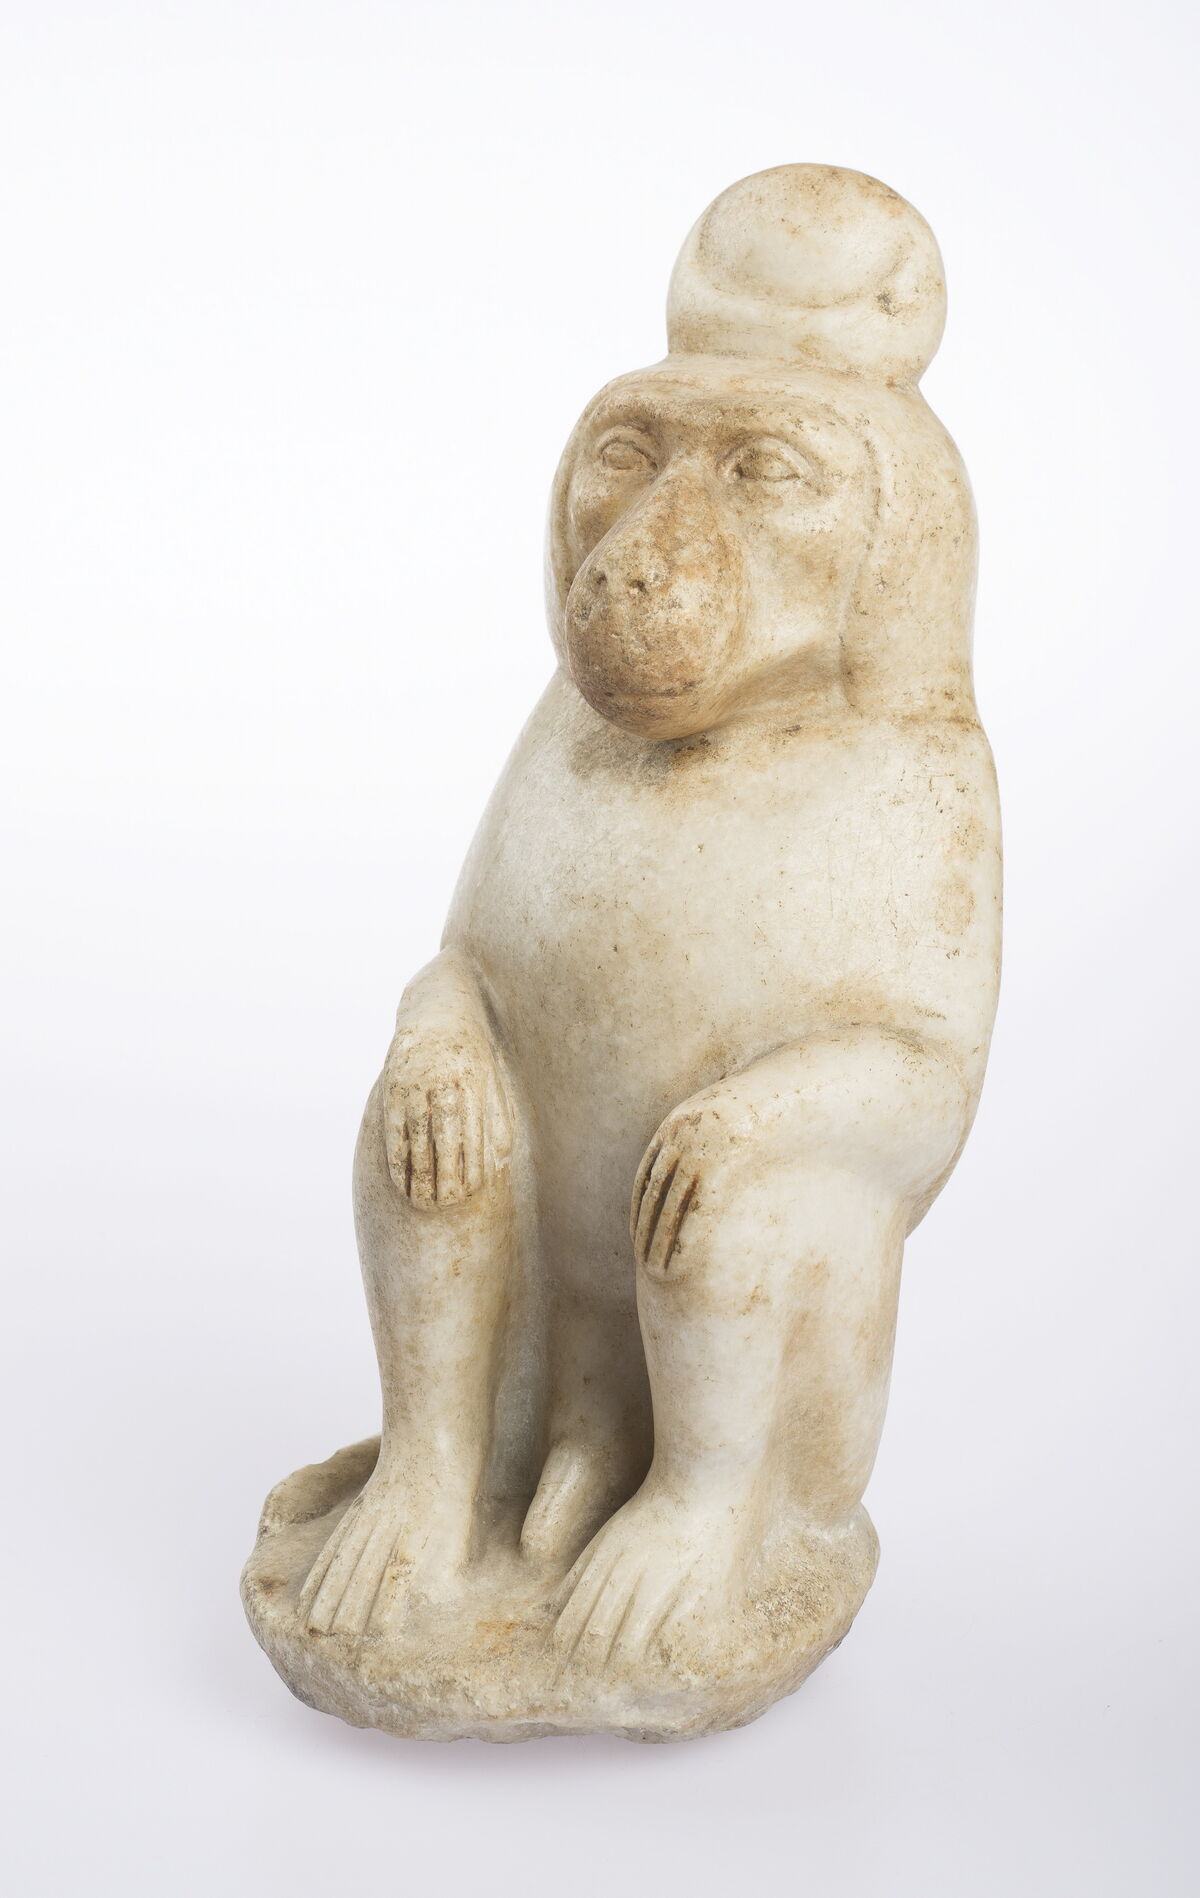 Statuette of the God Thoth in Baboon Form Egypt, Roman Period, 1st century BCE – 4th century CE. Photo by Ardon Bar-Hama. Courtesy of the Freud Museum London.